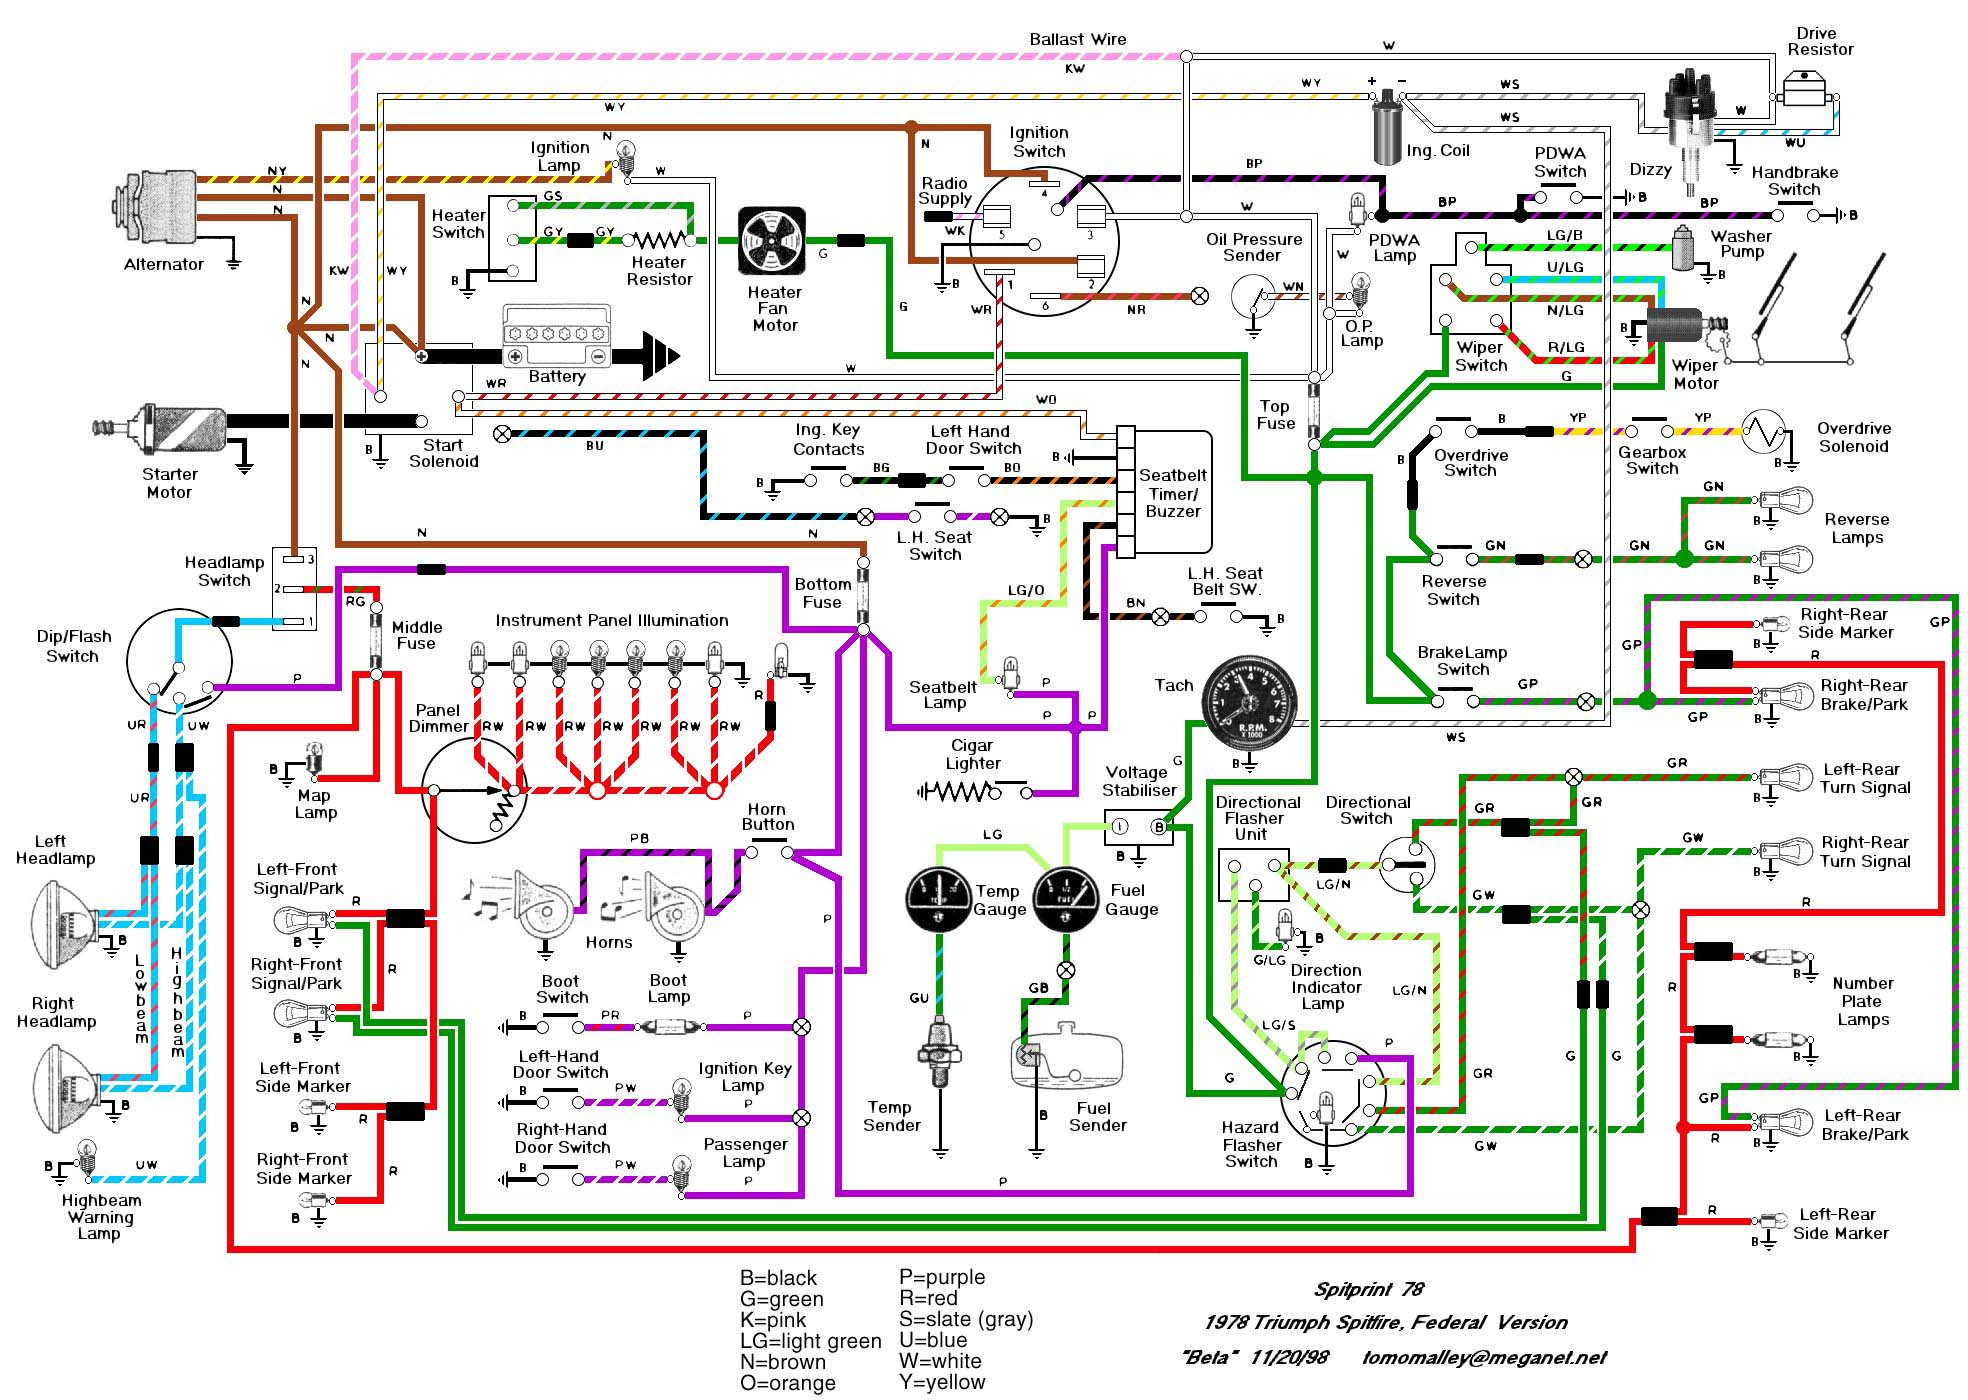 78diagram wiring schematics and diagrams triumph spitfire, gt6, herald triumph spitfire mk1 wiring diagram at virtualis.co